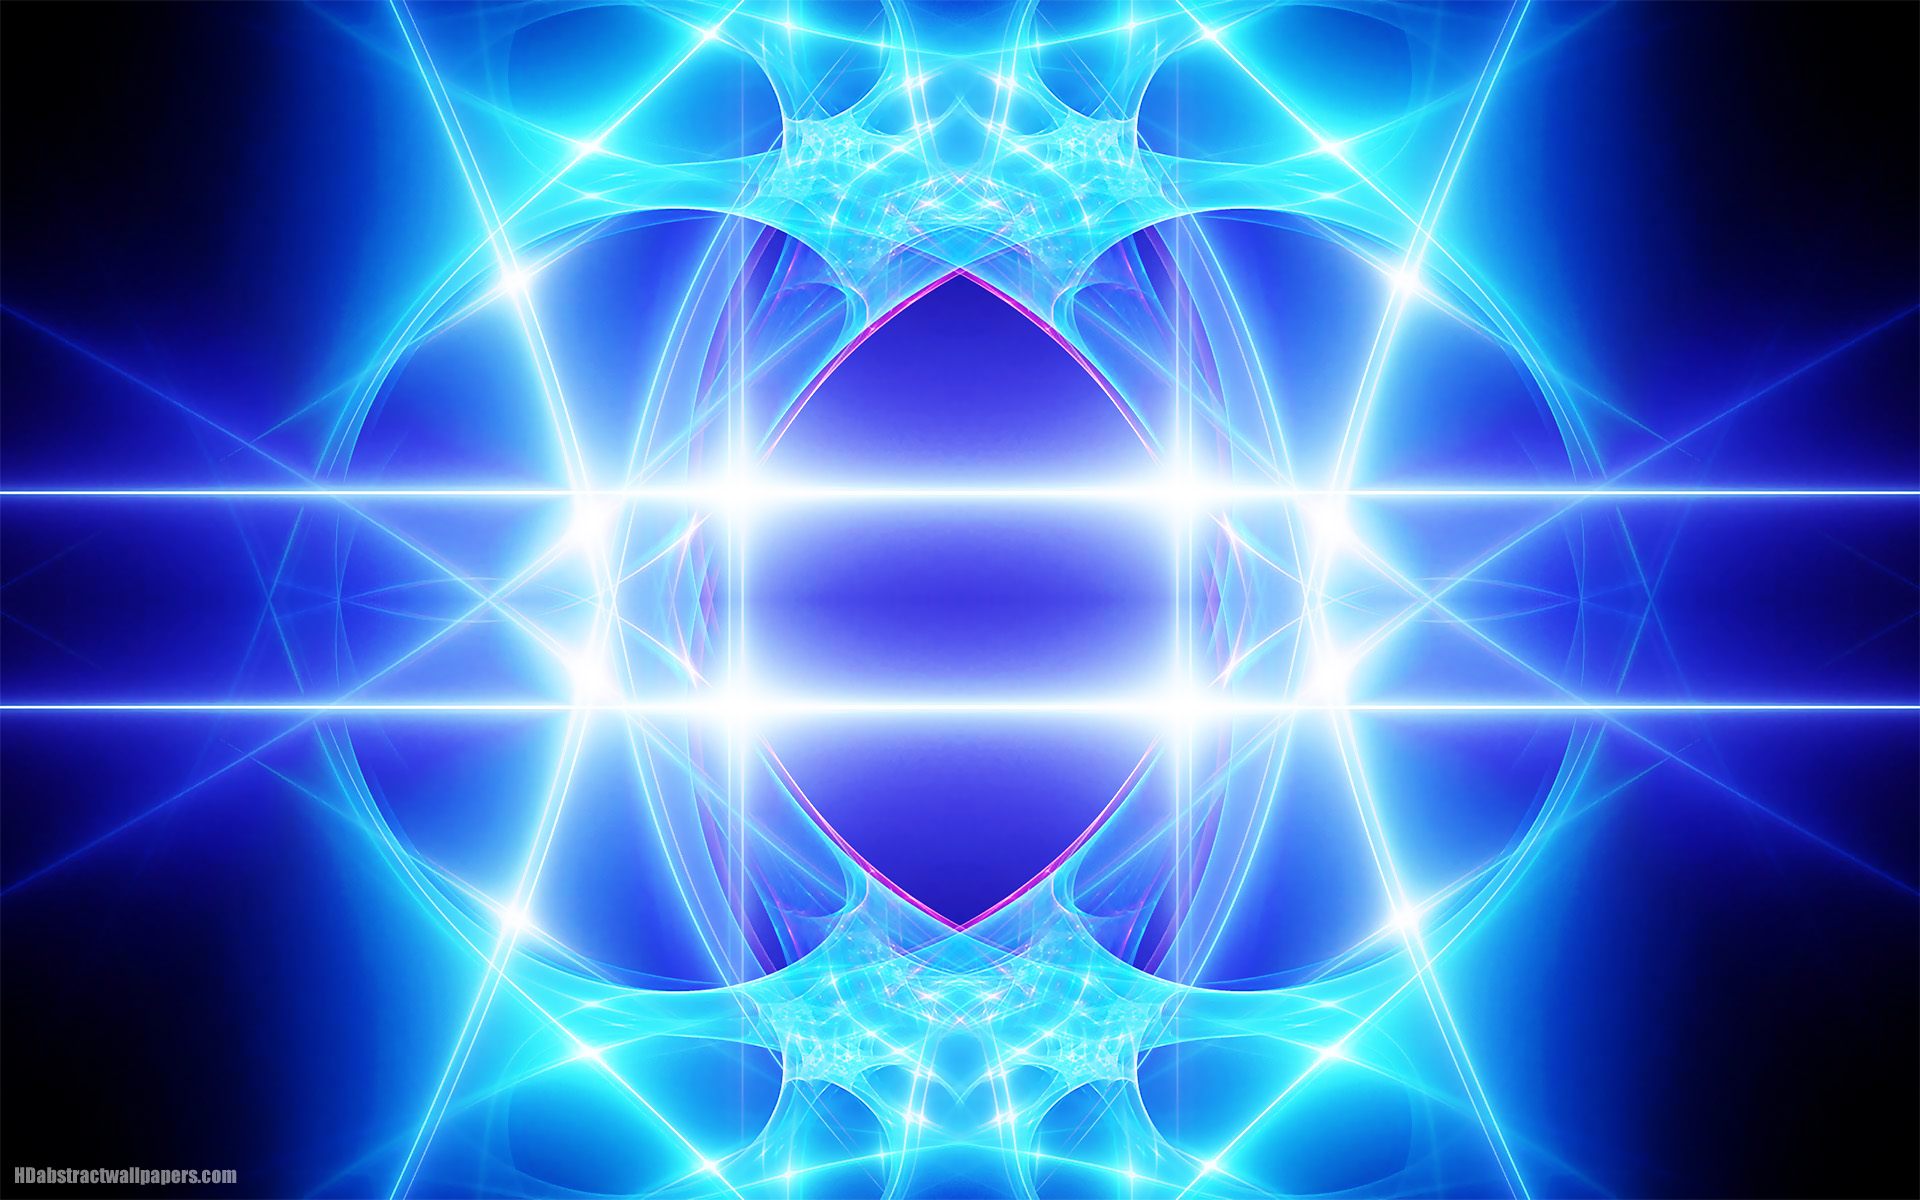 Blue Abstract Background With Lines And Bright Lights